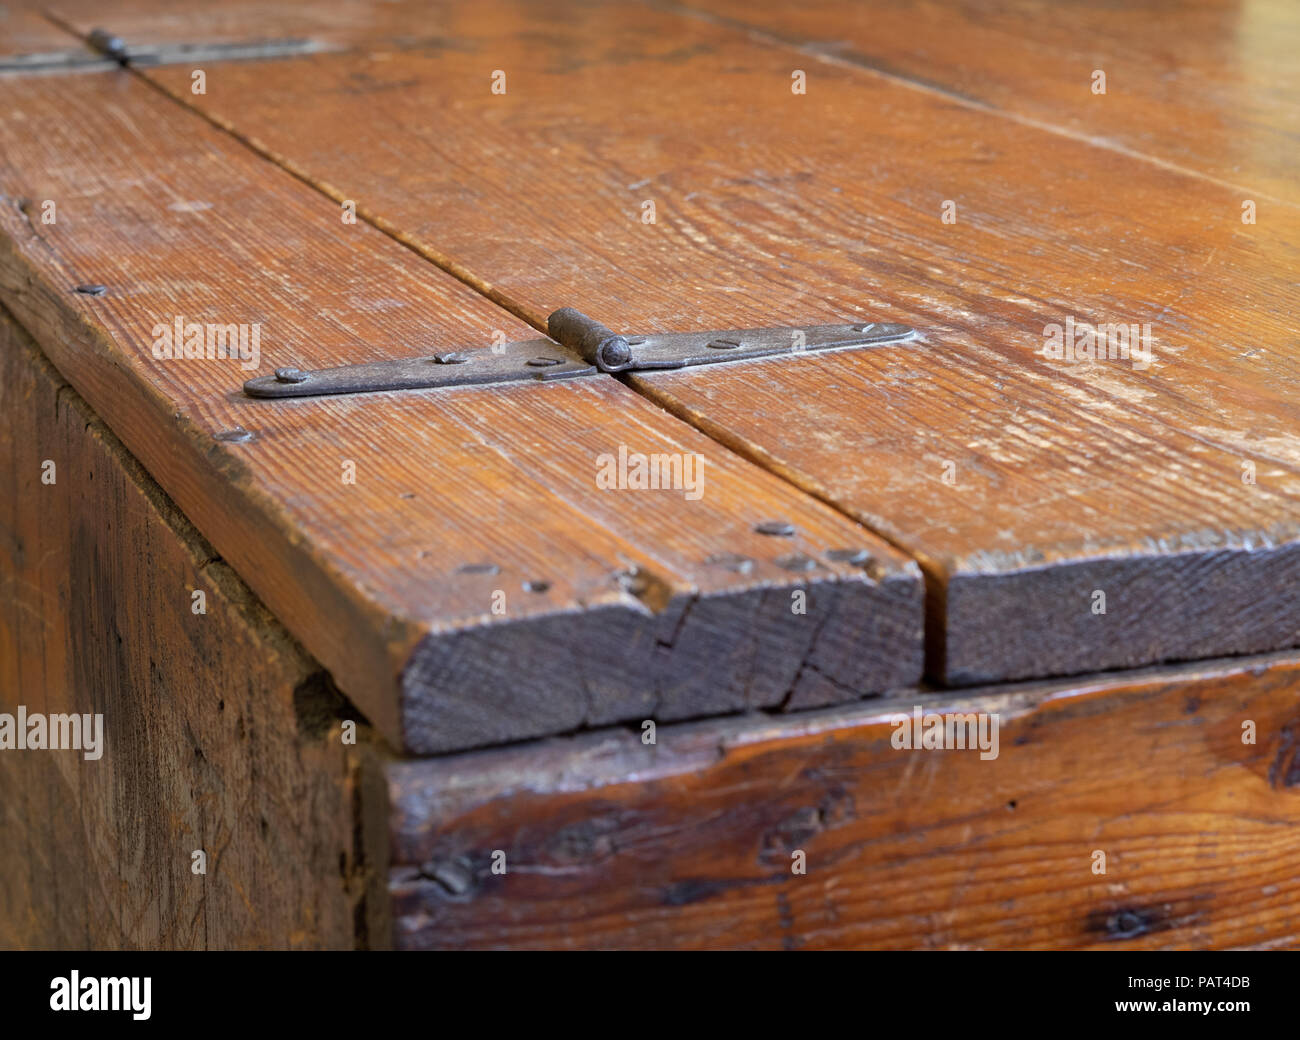 Vintage Rustic Antique Wooden Book Crate Table with Metal Hinges - Stock Image